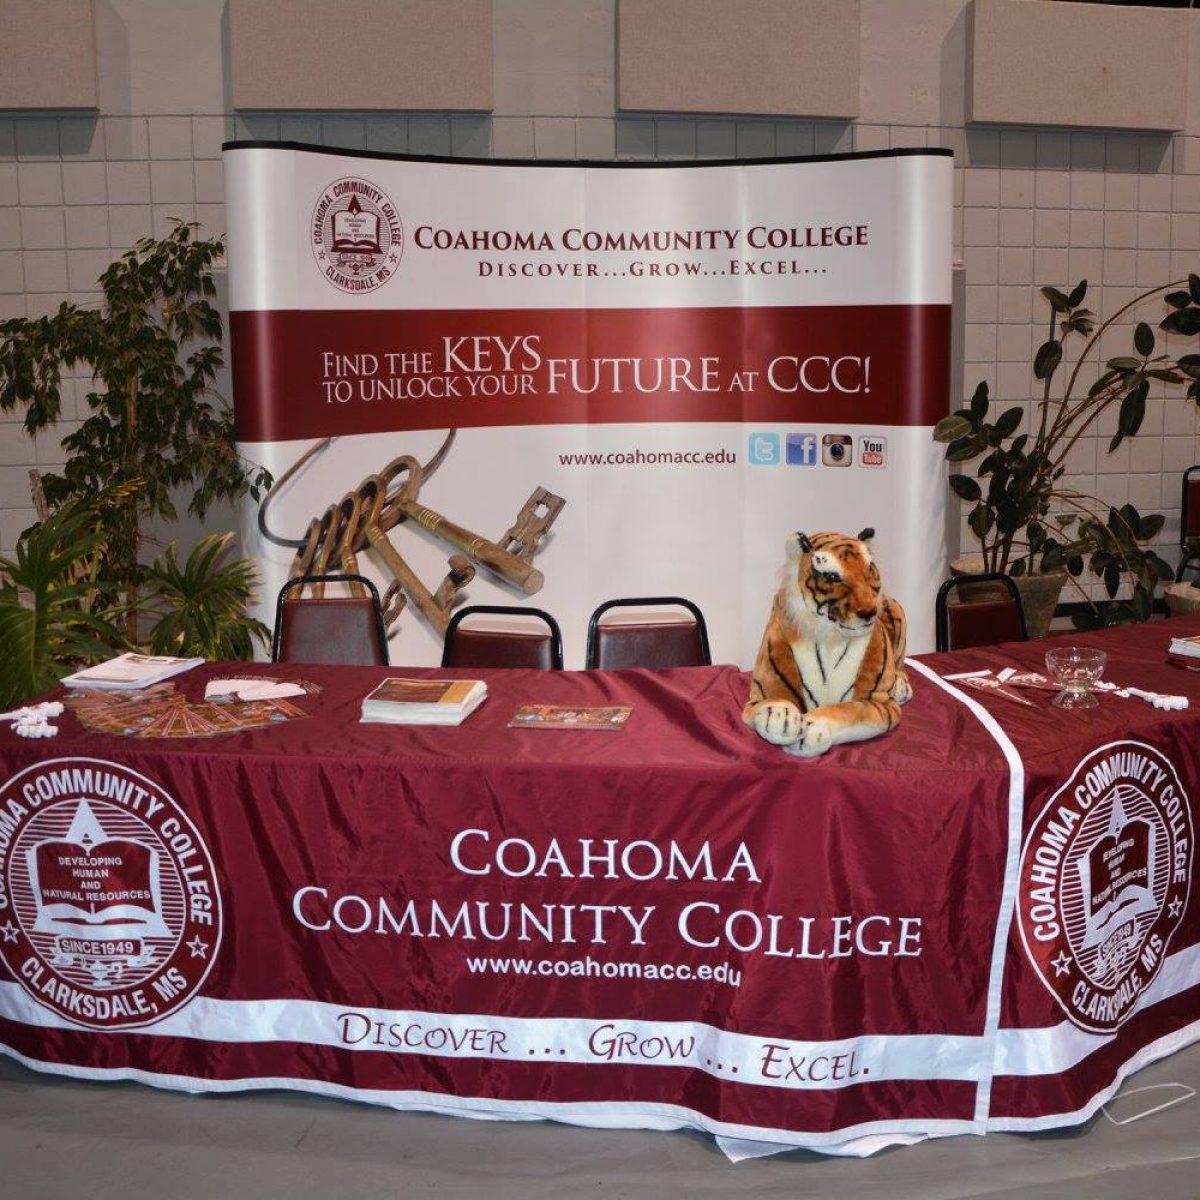 21) Coahoma Community College